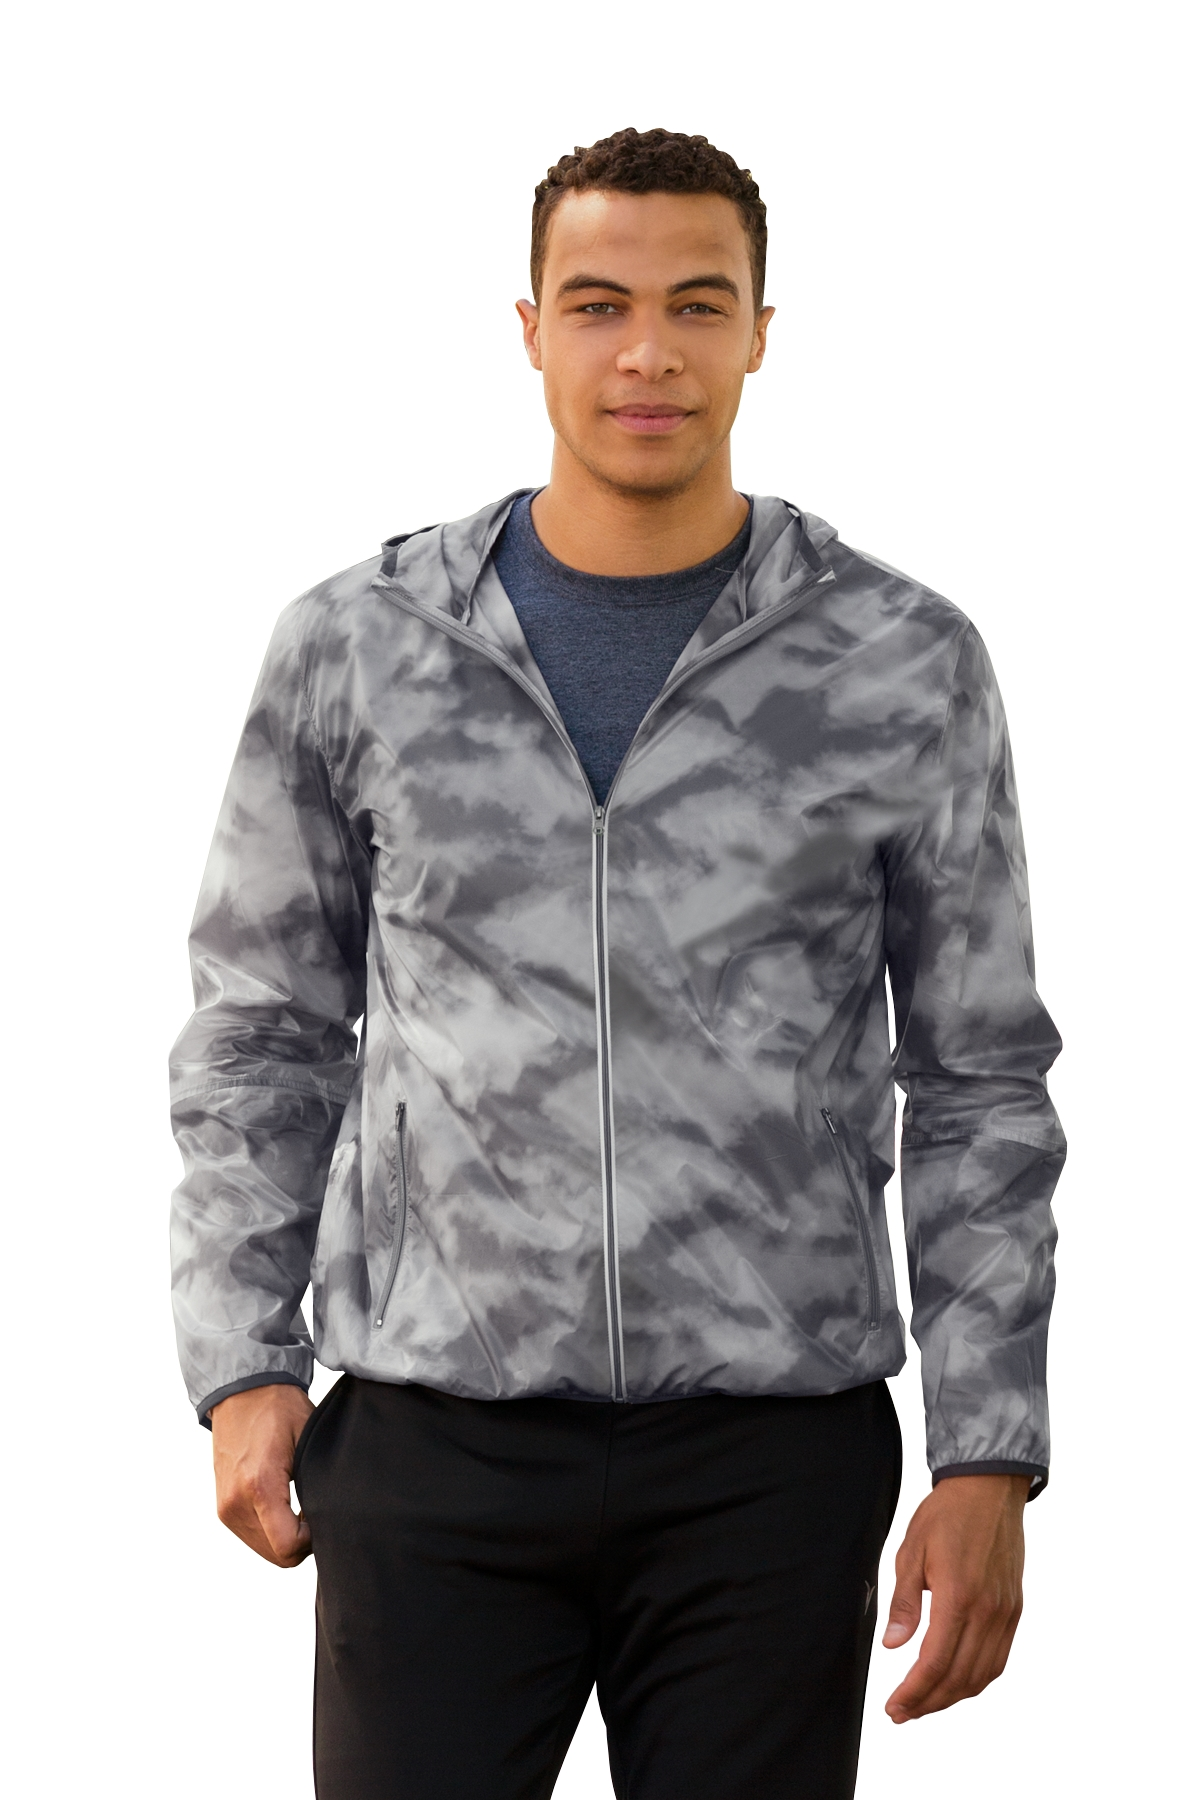 Vantage 7150 - Men's Cloud Jacket